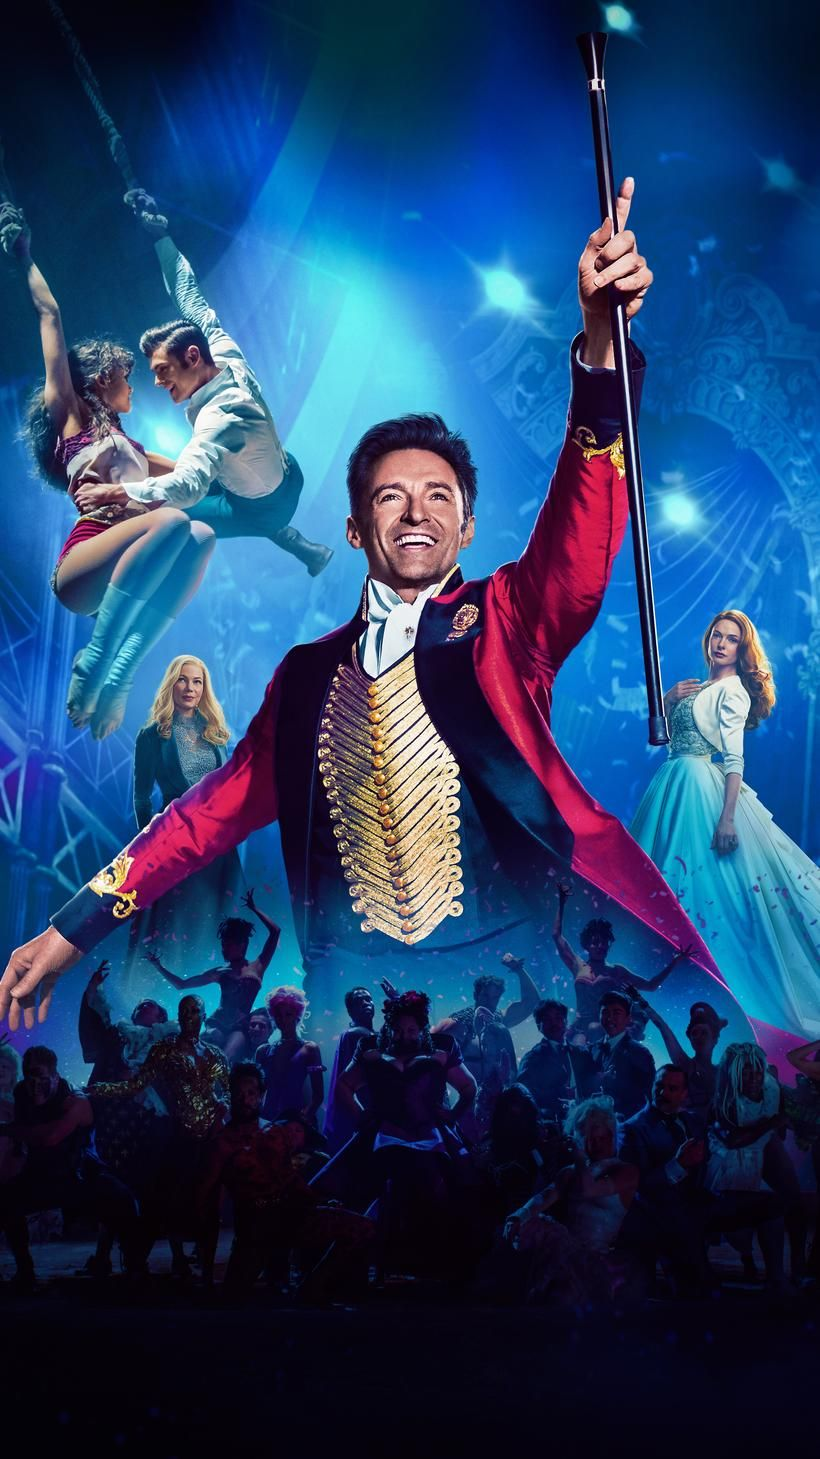 Wallpapers The Greatest Showman Wallpapers The Greatest Showman Showman Greatful